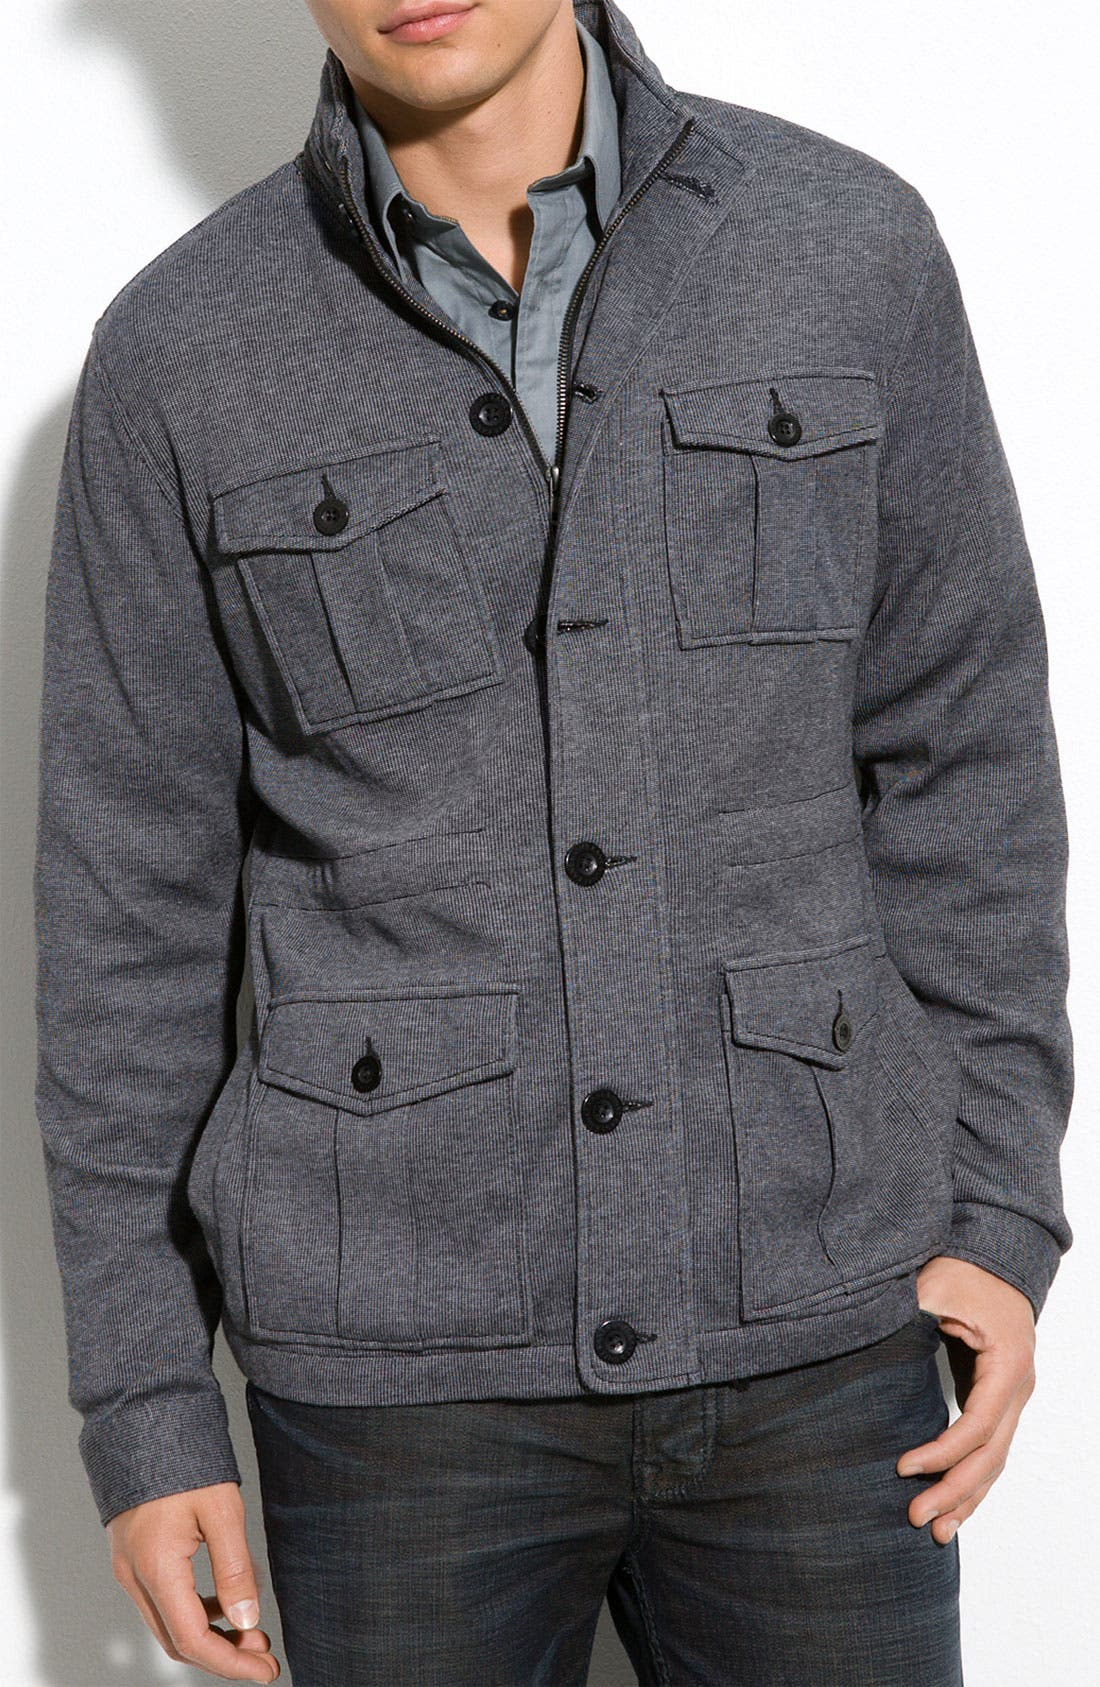 Main Image - Kane & Unke Trim Fit Field Jacket